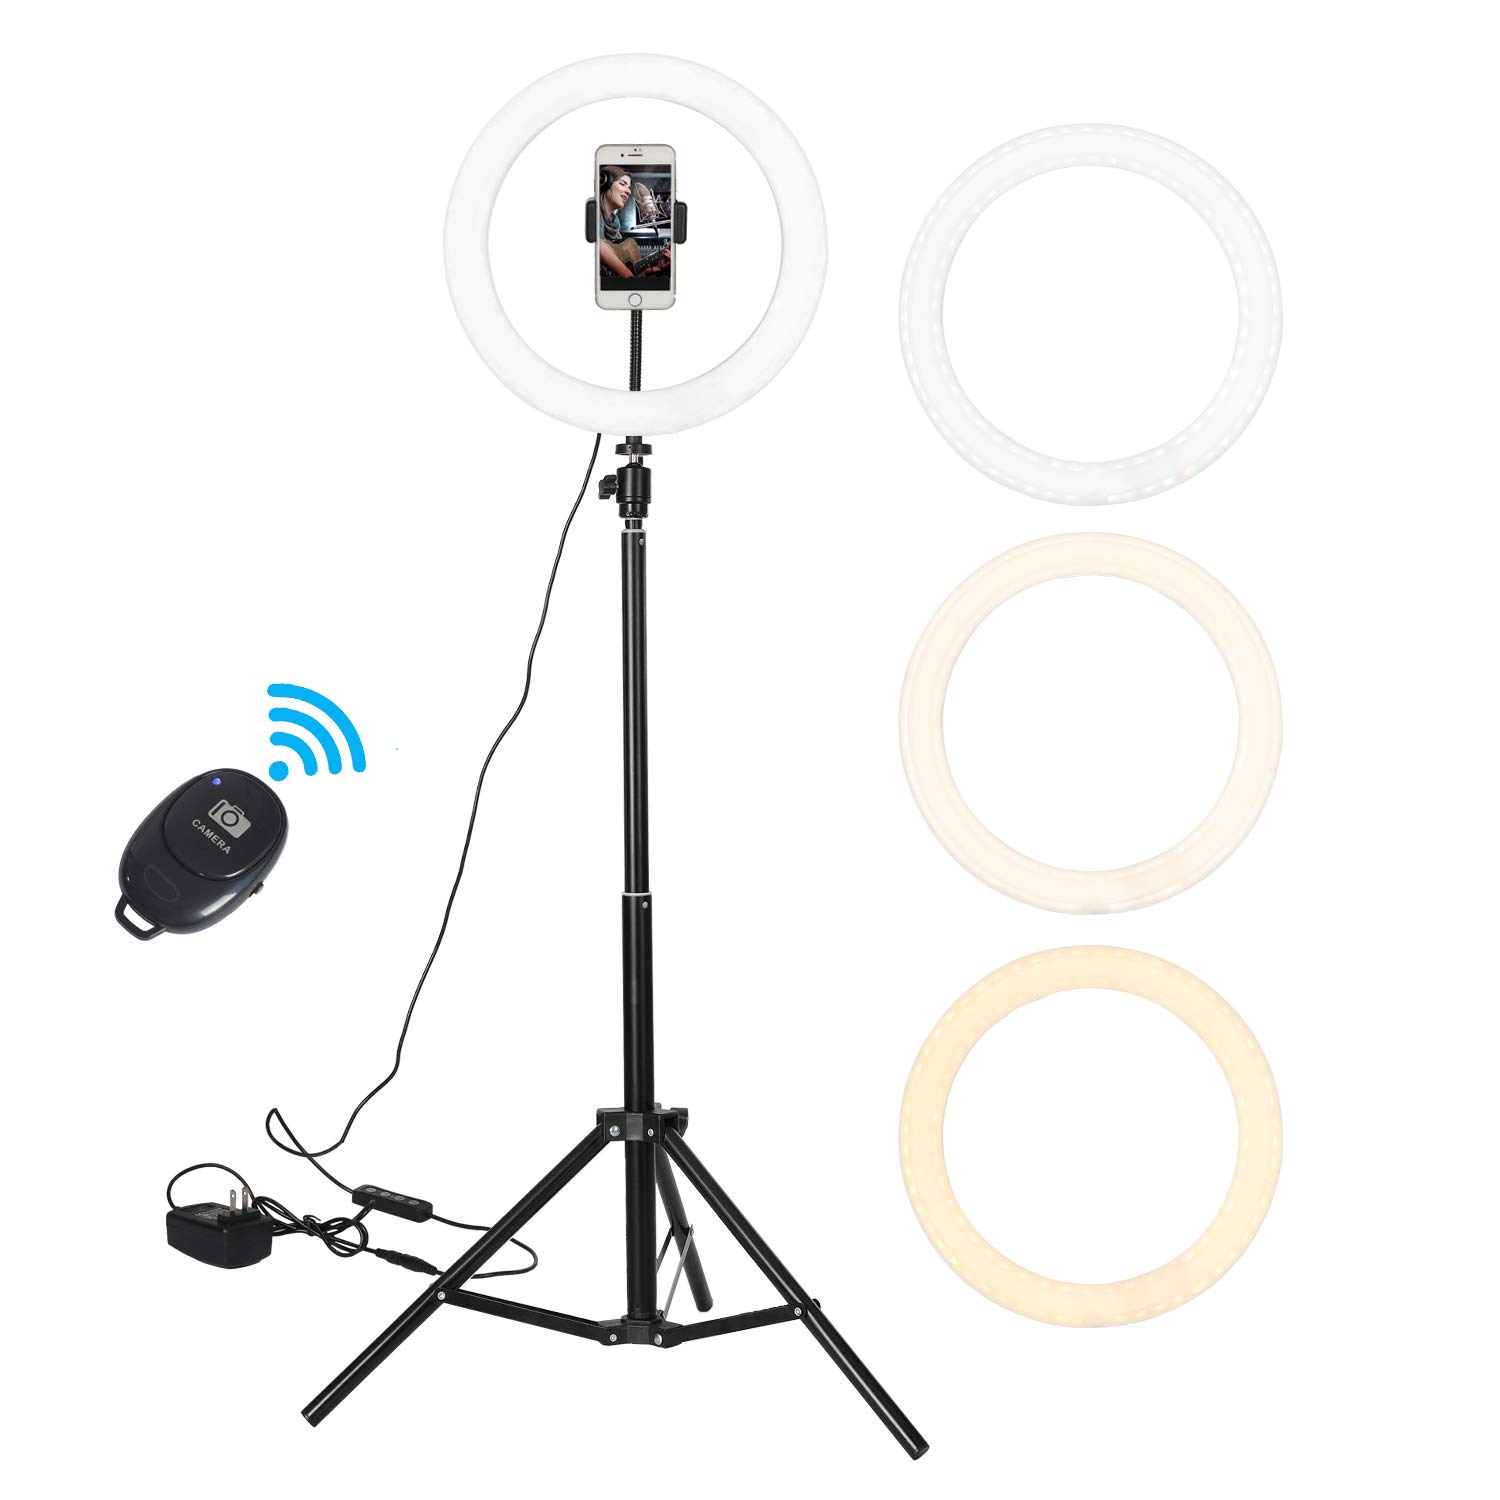 GOGOUP 12'' Ring Light, LED Aluminum Radiator Dimmable LED Selfie o Ring Light with Tripod Stand & Phone Holder for Portrait Vlog YouTube Video Photography Compatible with iPhone Xs Max XR Android by GOGOUP